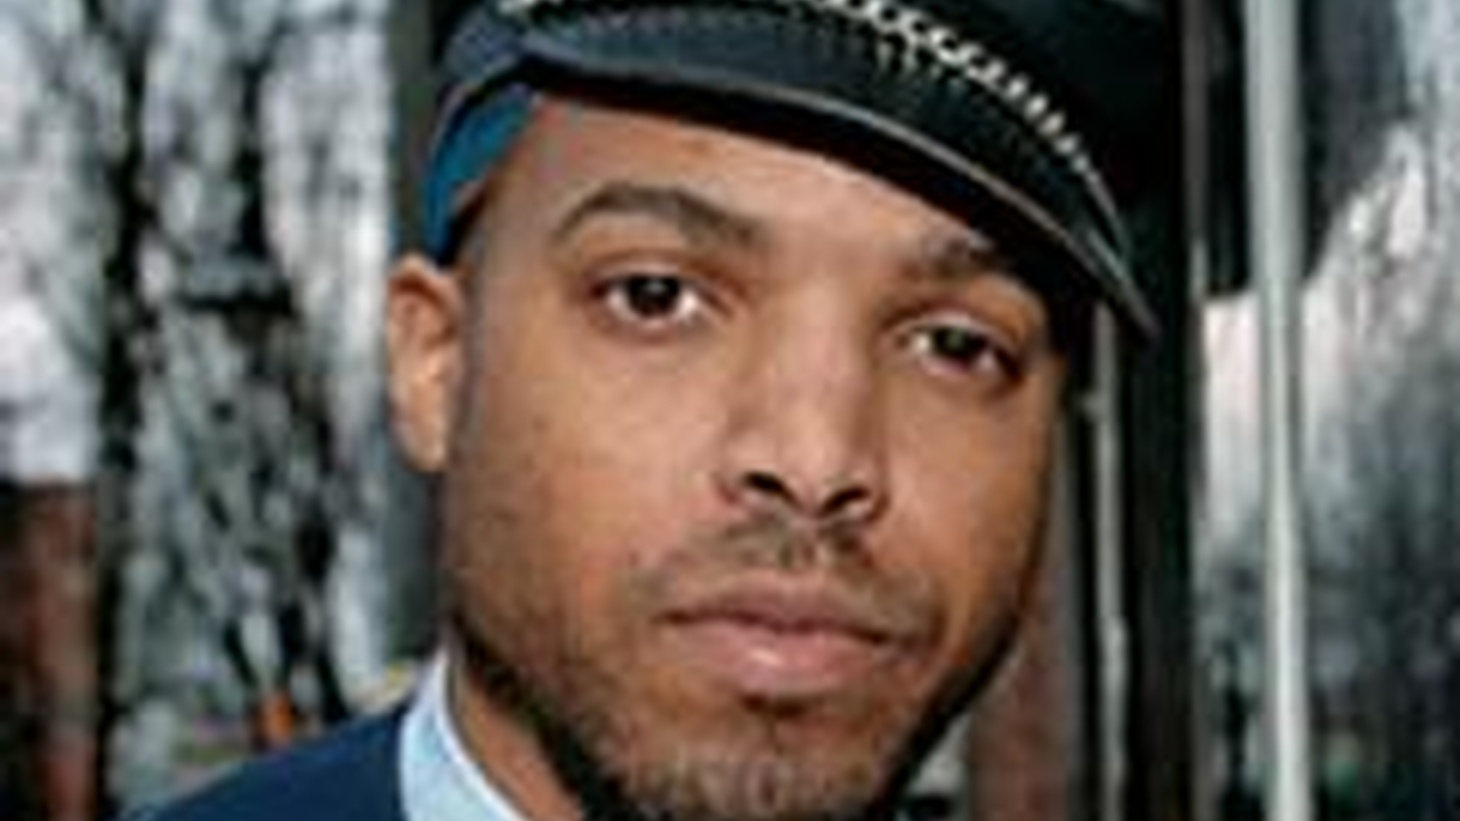 Van Hunt brings his soulful stylings to Morning Becomes Eclectic listeners.